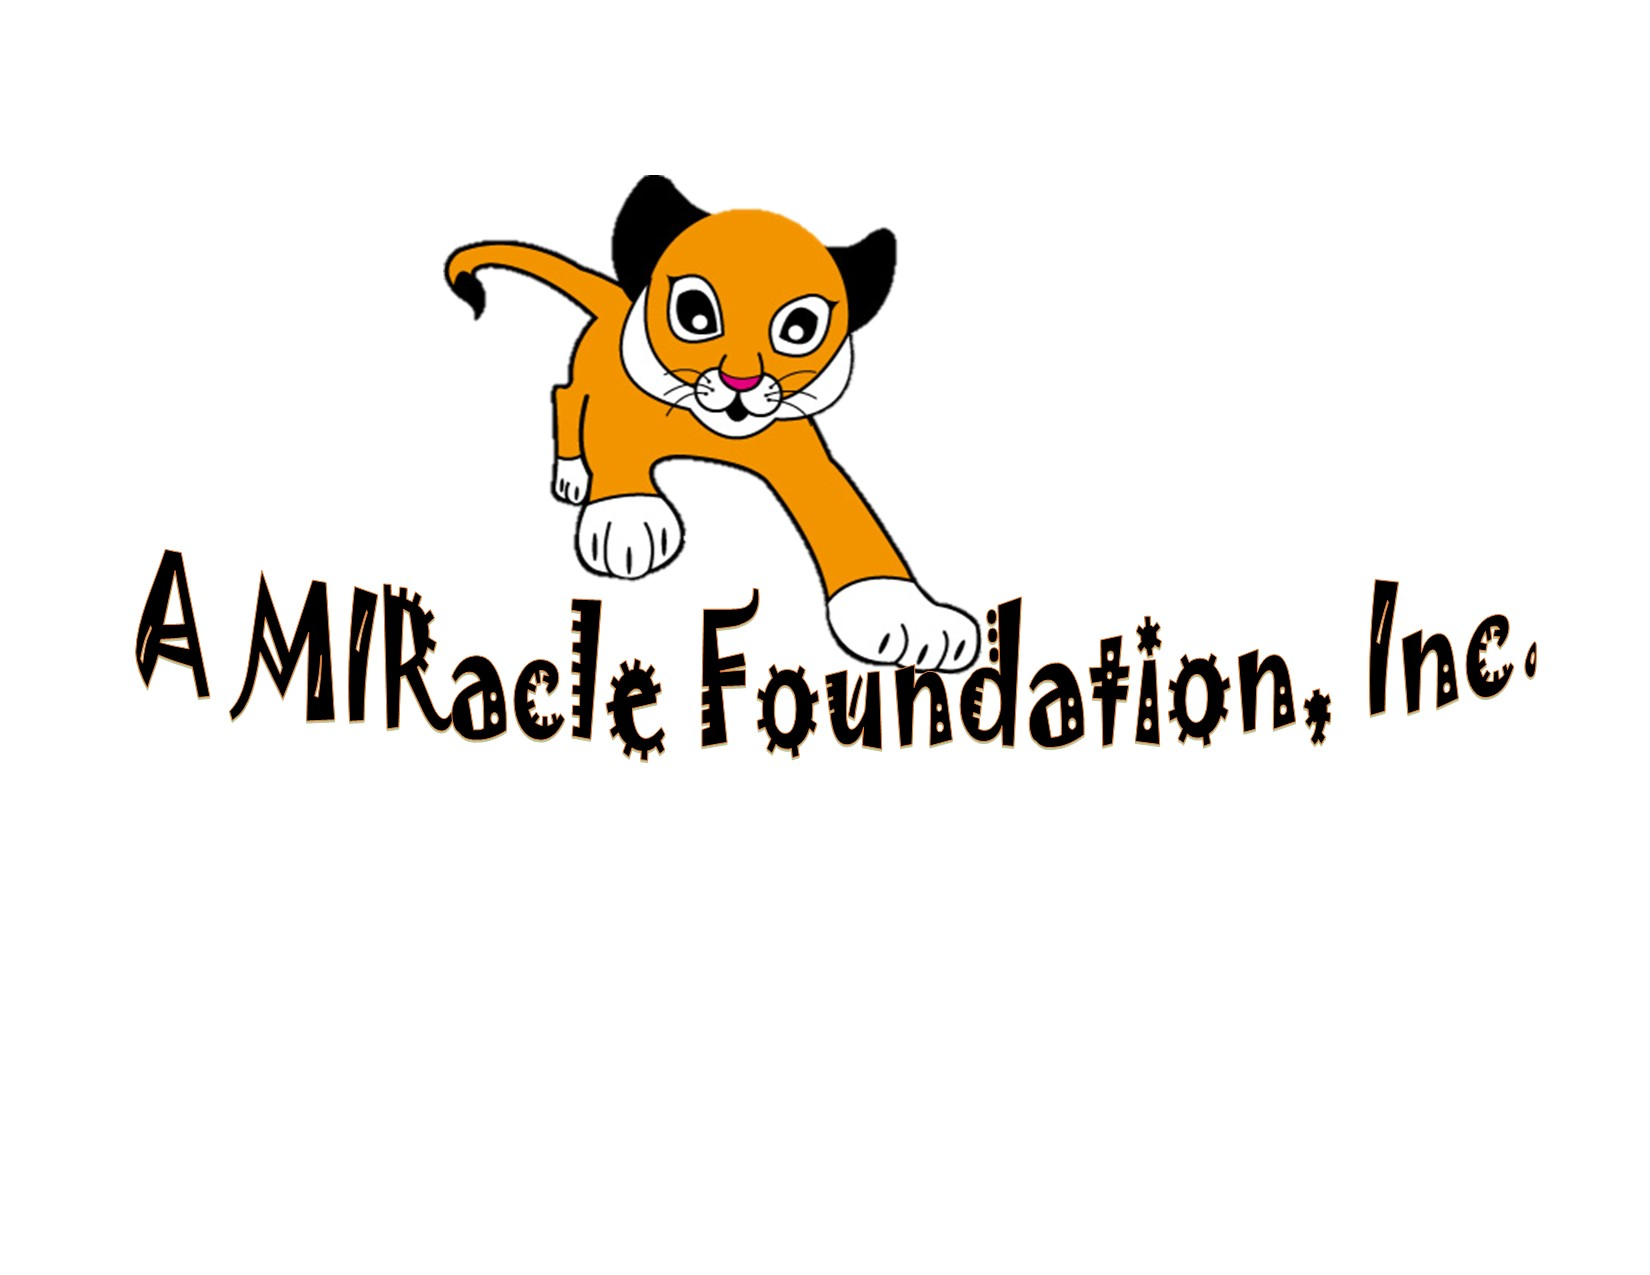 A MIRacle Foundation